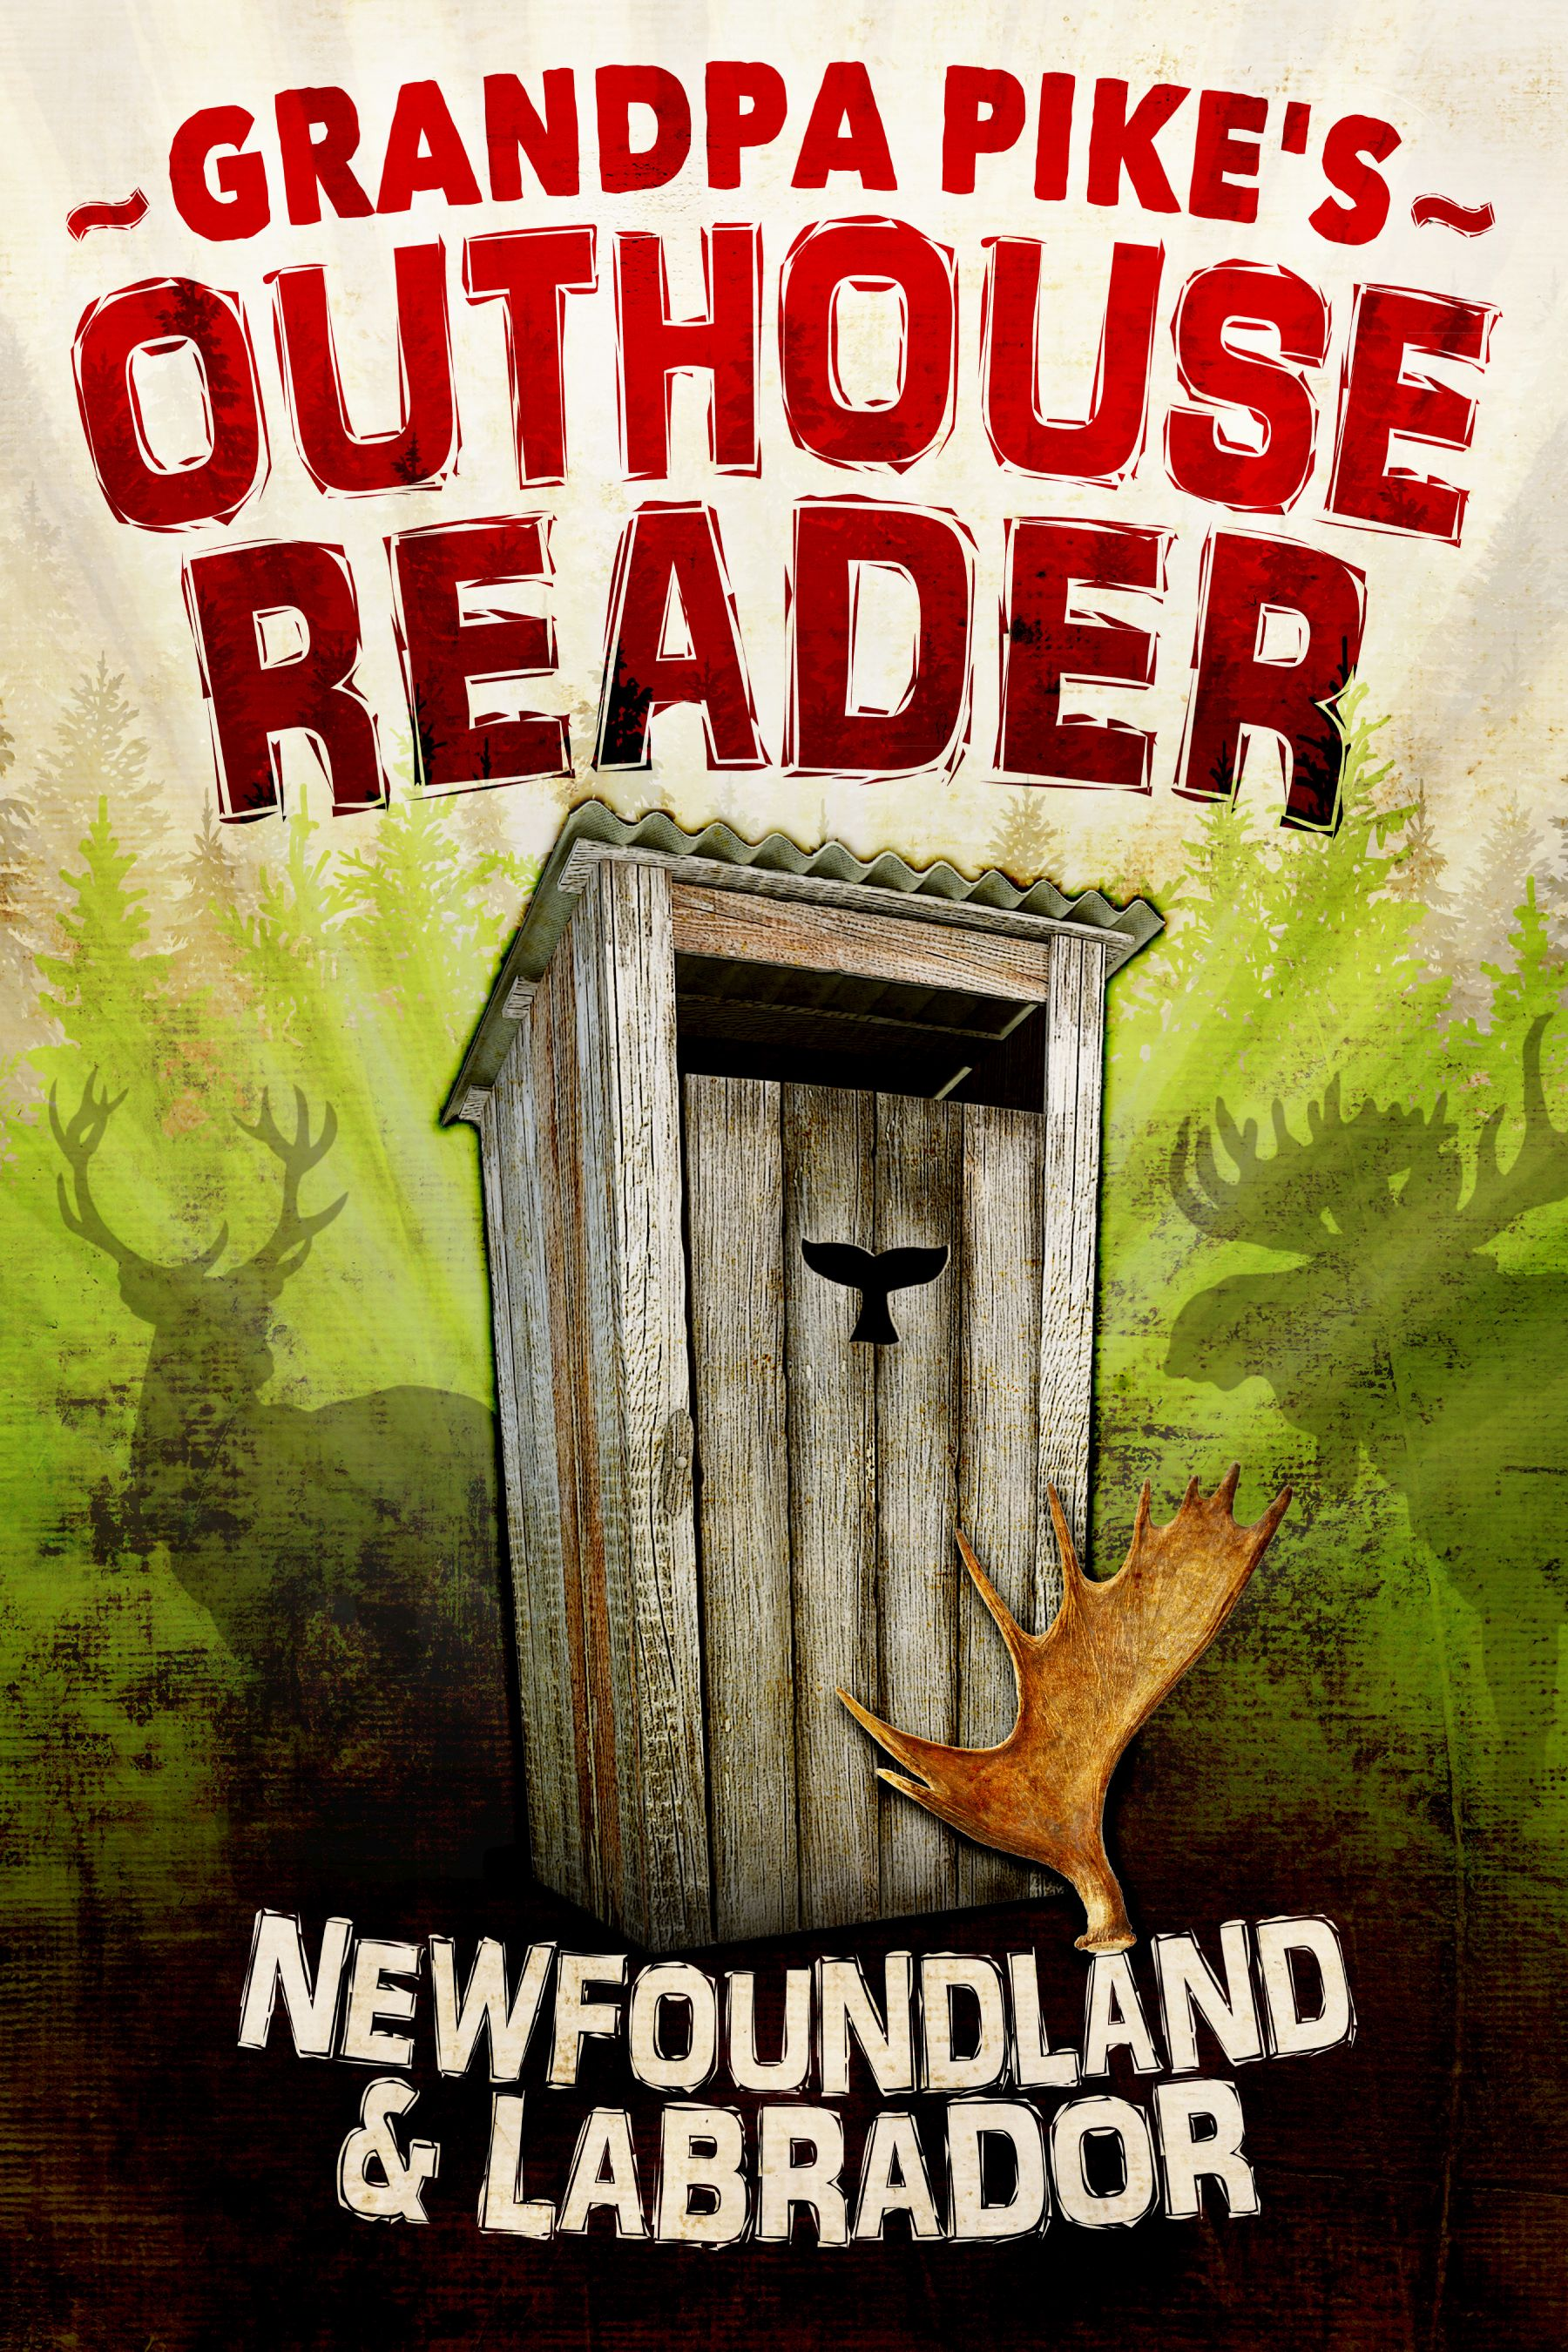 Grandpa Pike's outhouse reader